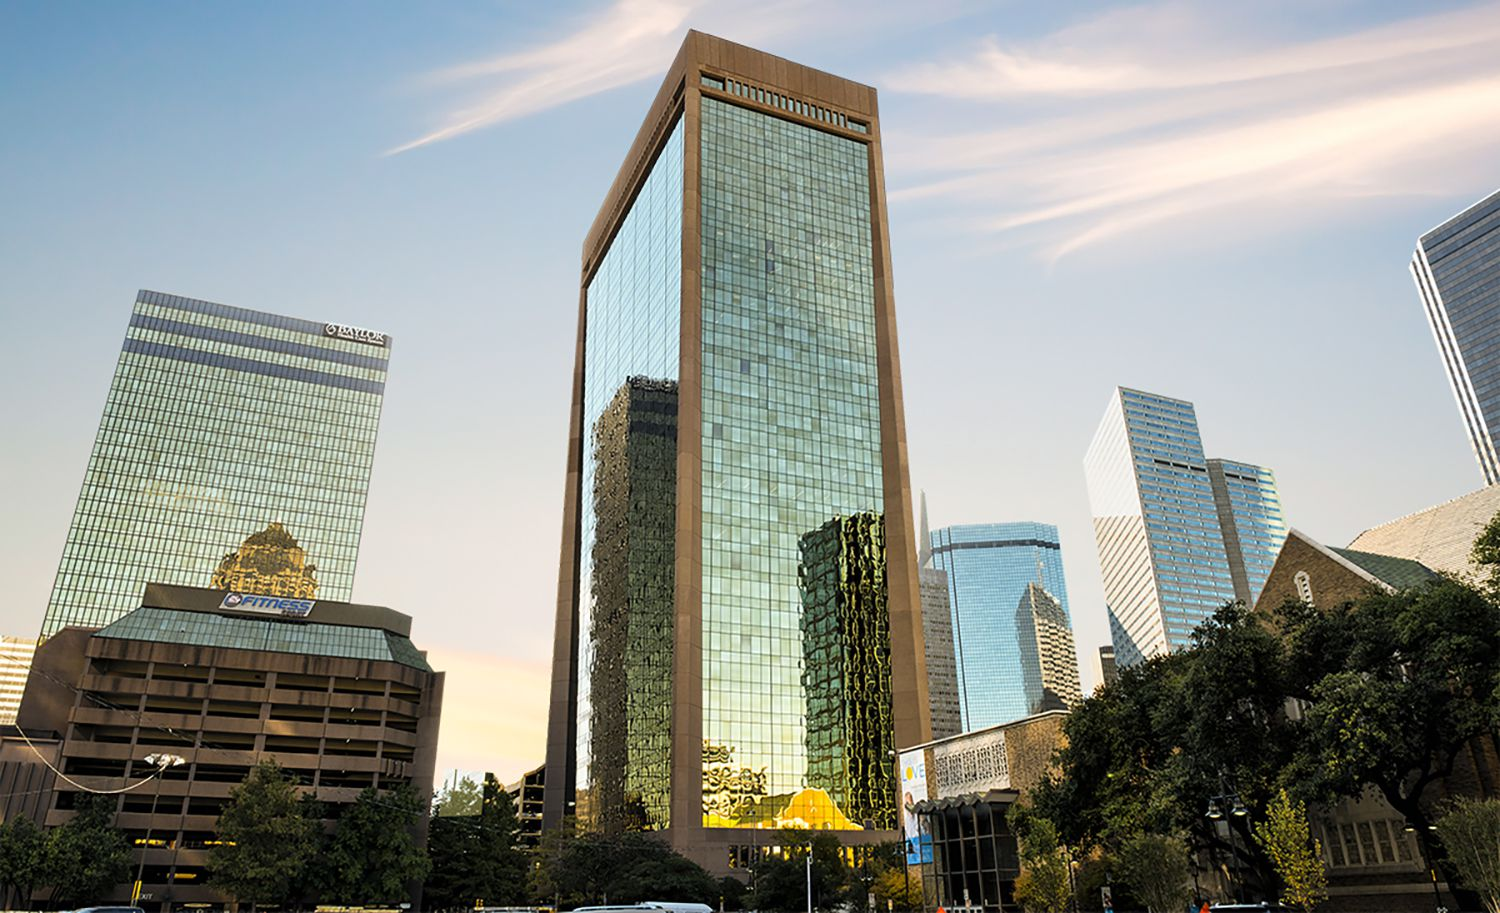 Lone Wolf Real Estate Technologies is moving its U.S. headquarters to the 717 Harwood tower in downtown Dallas.